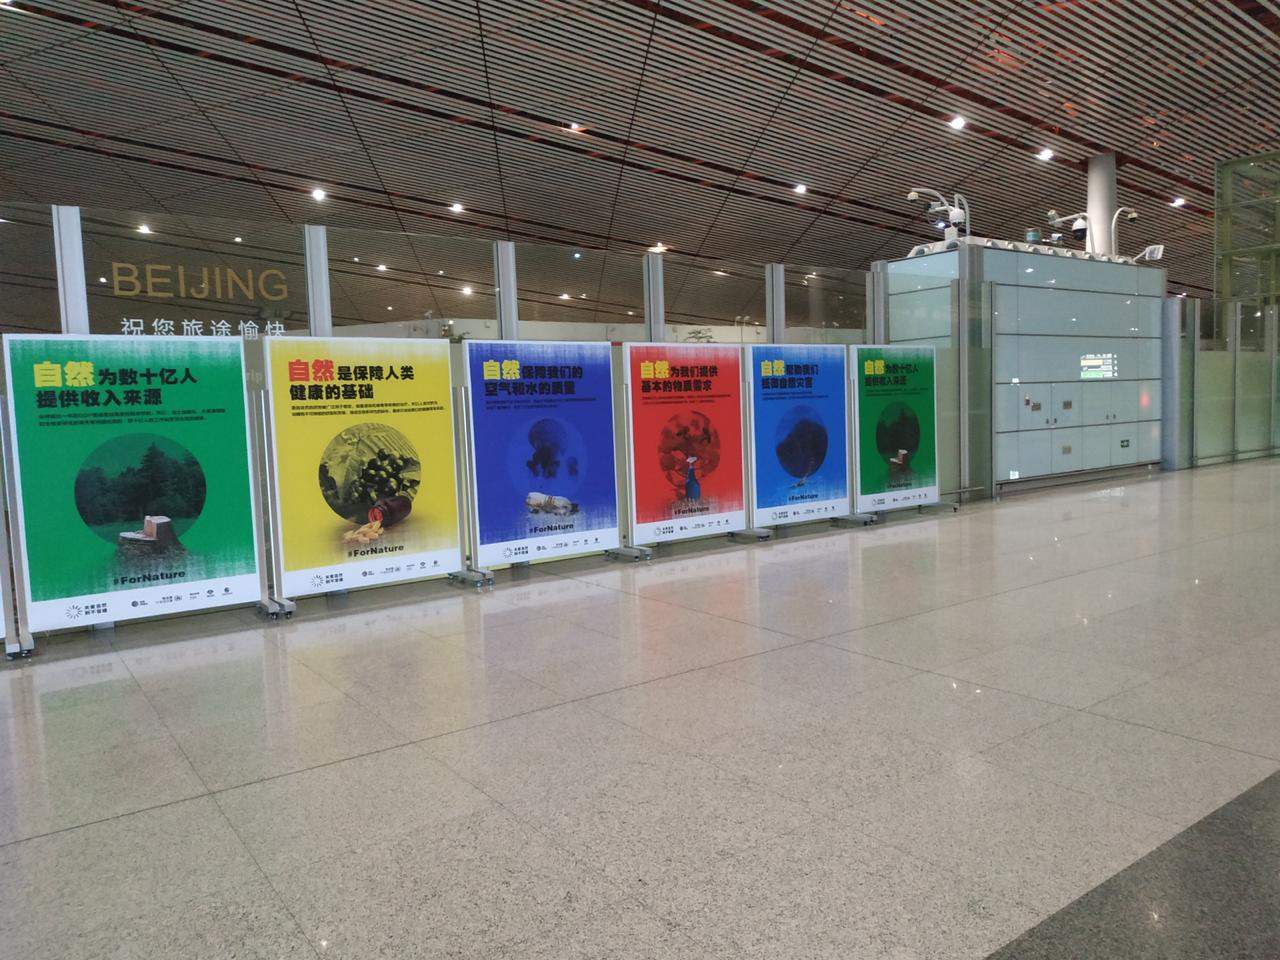 Beijing airport display